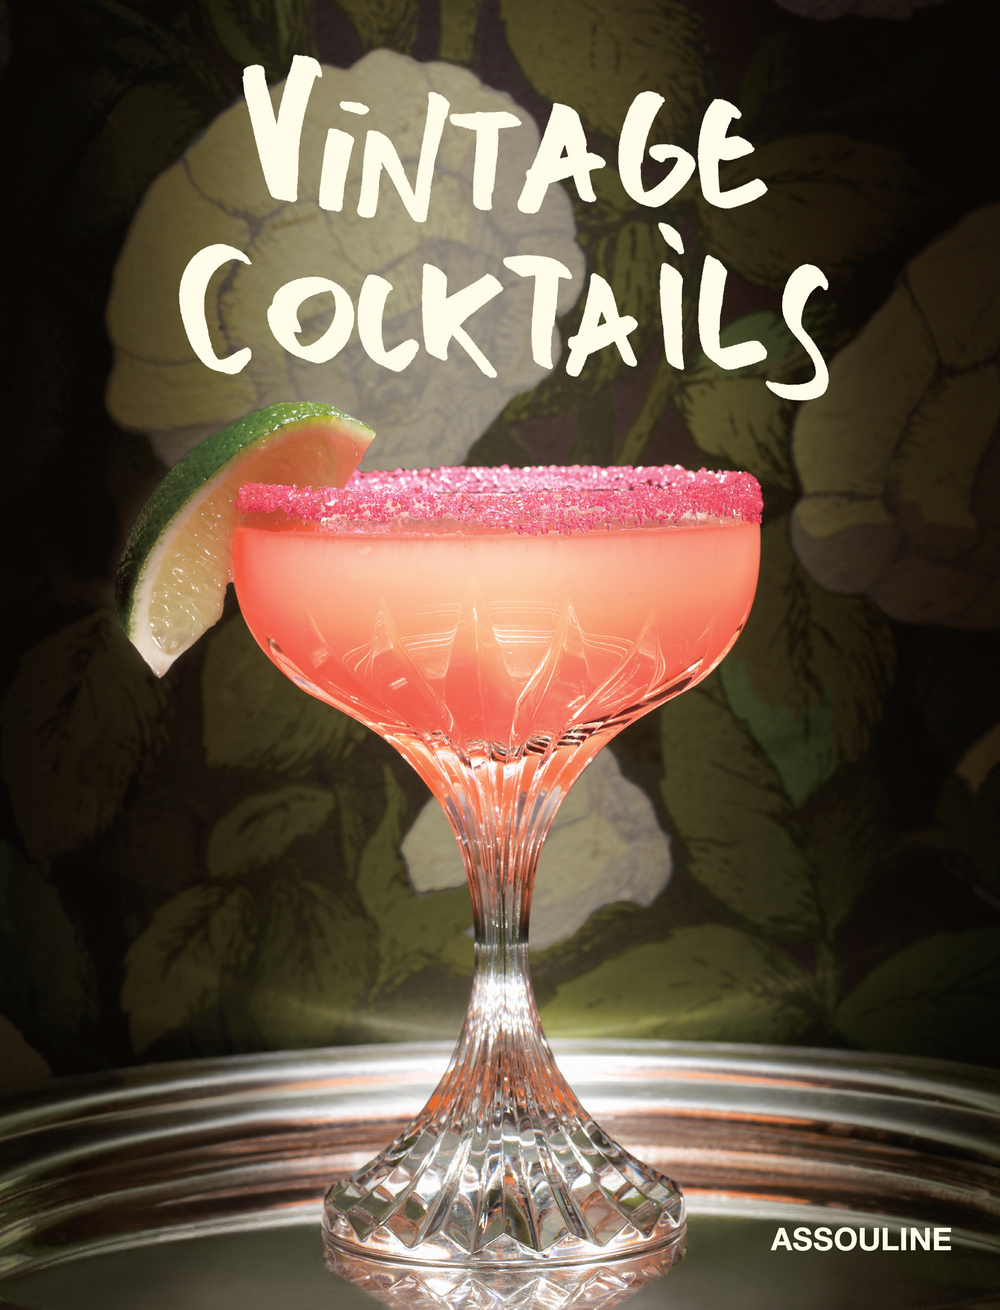 Vintage-Cocktails-book-cover-straight-on1.jpg